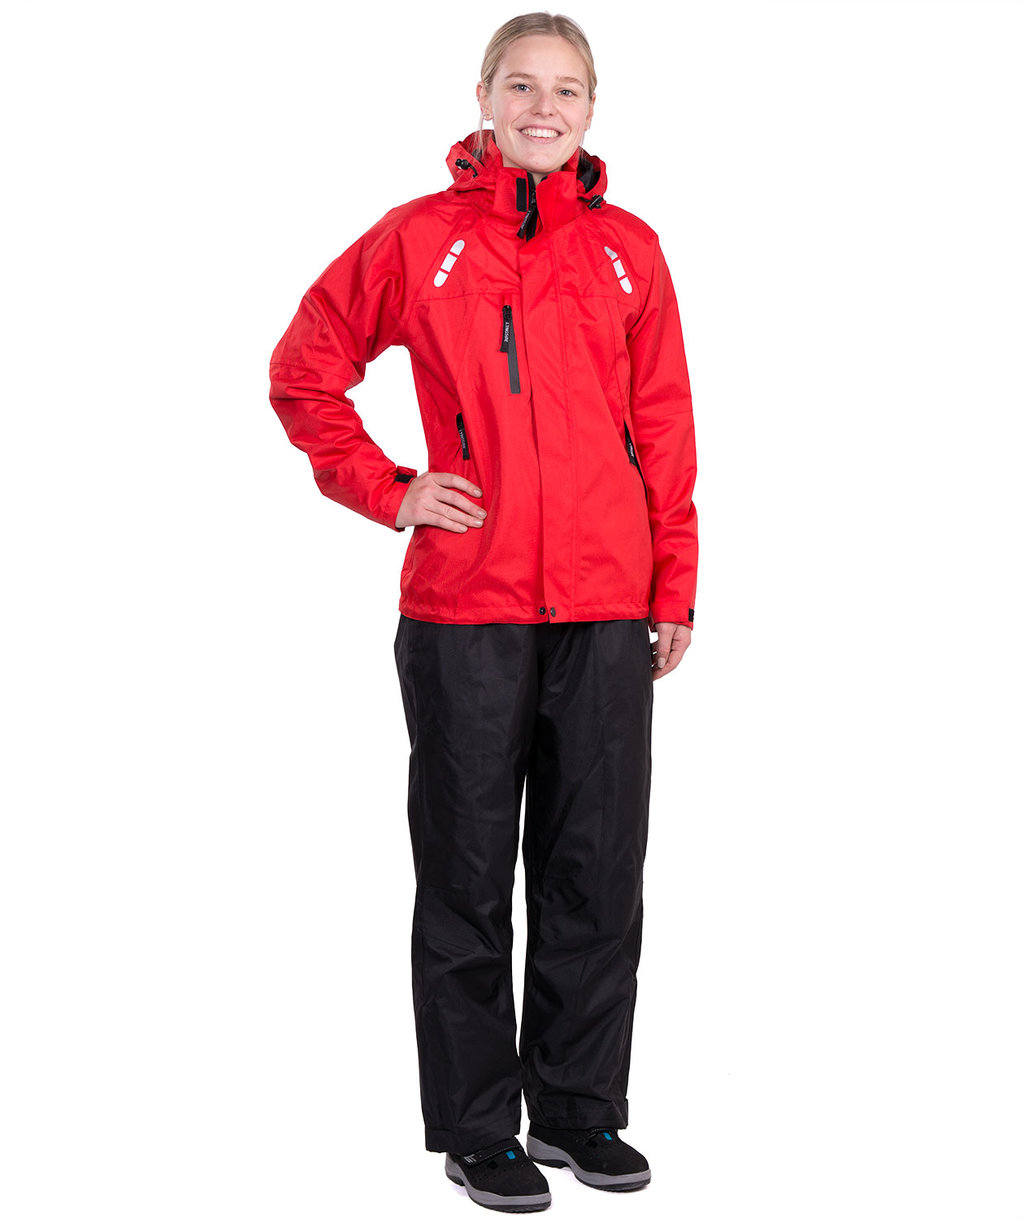 Lyngsoe women's rain clothes set FOX6088, Red/Black